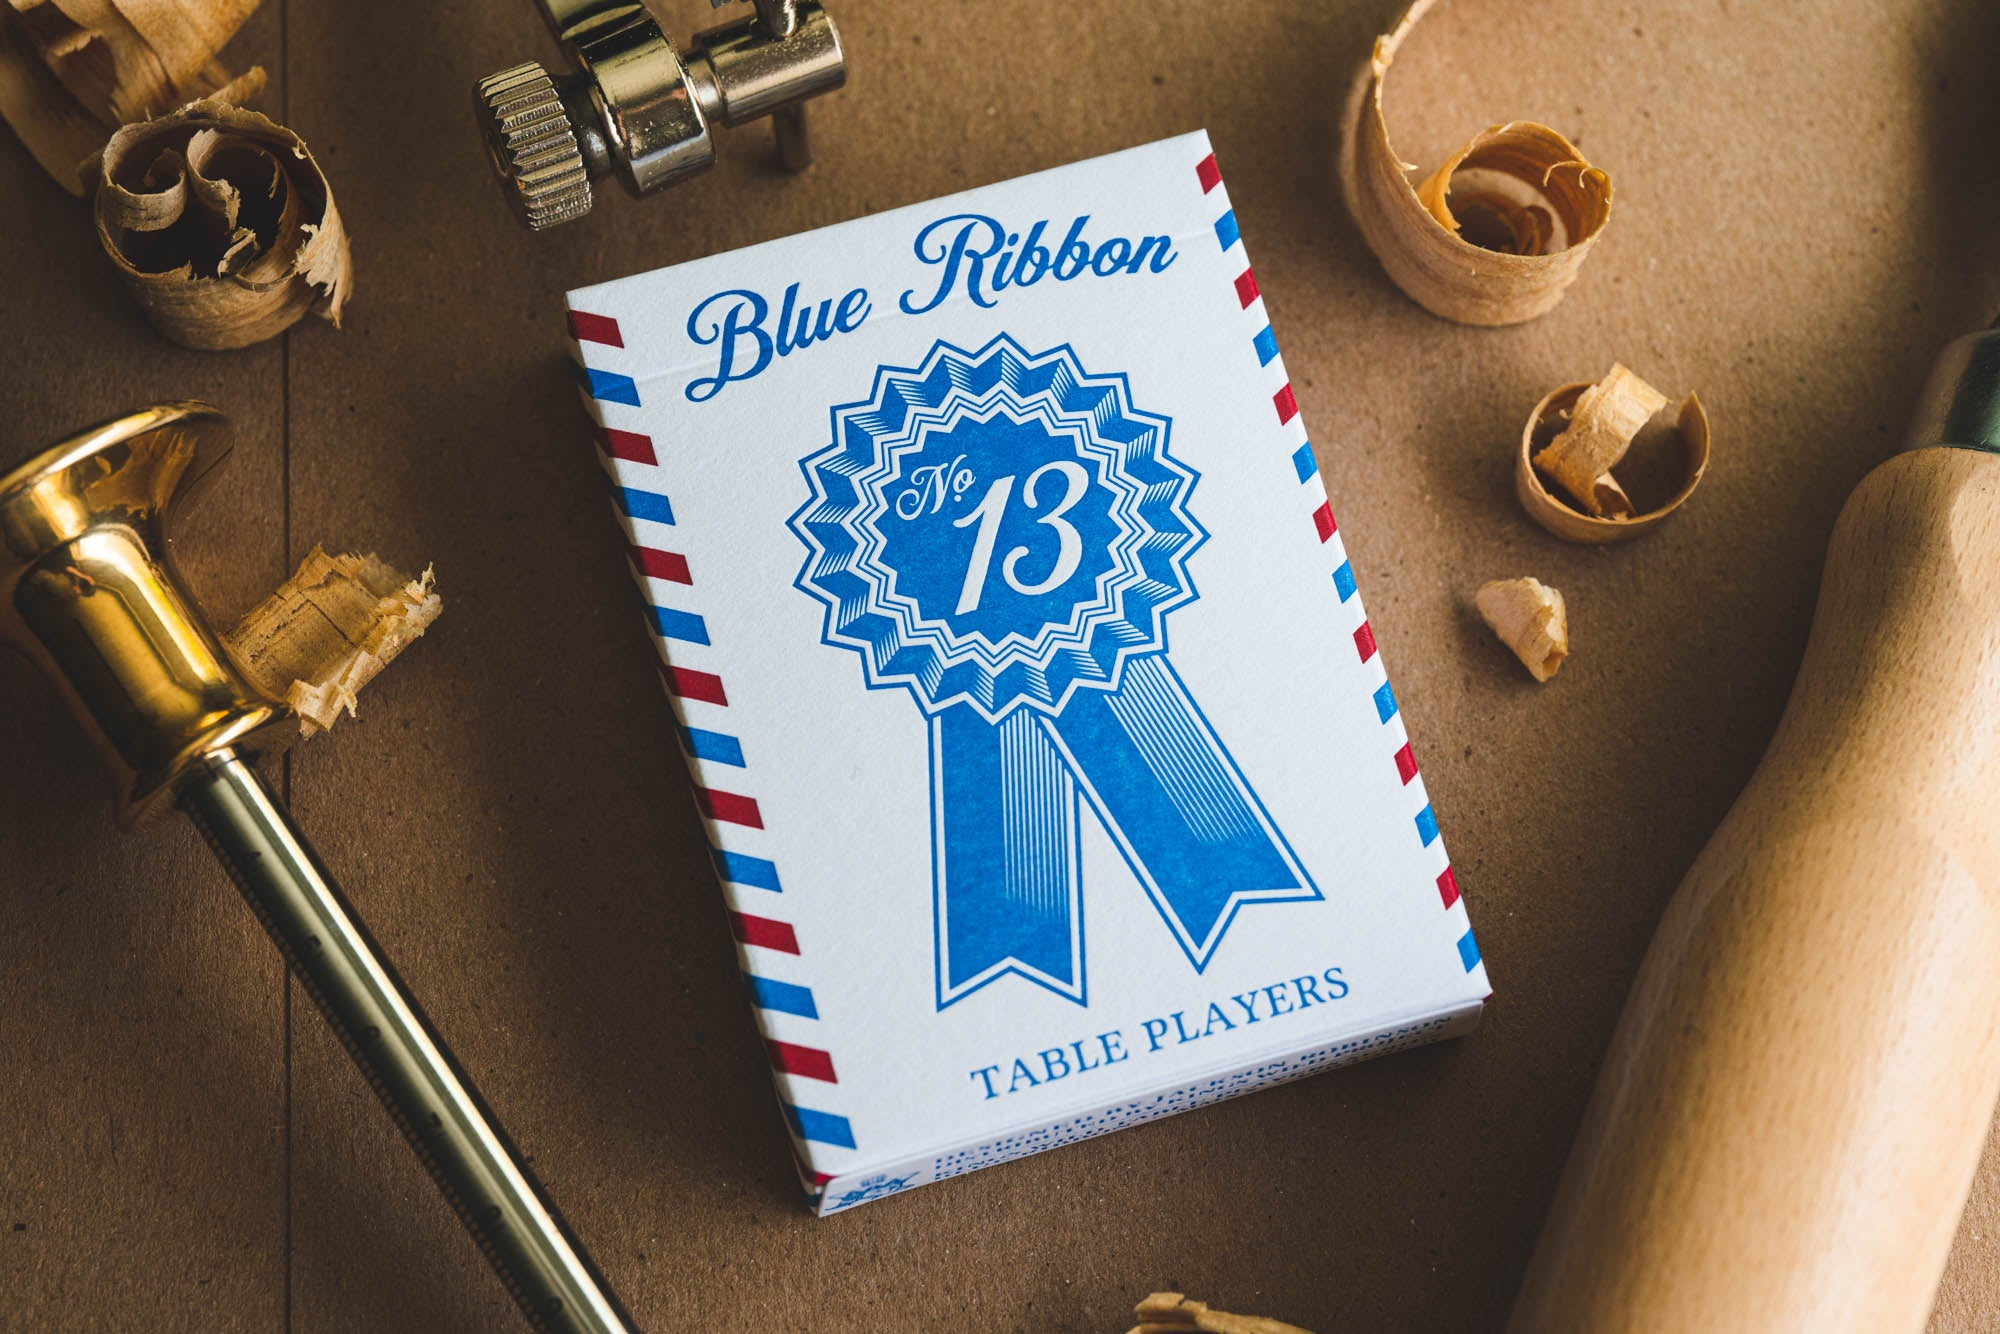 Blue Ribbon - Standard Edition